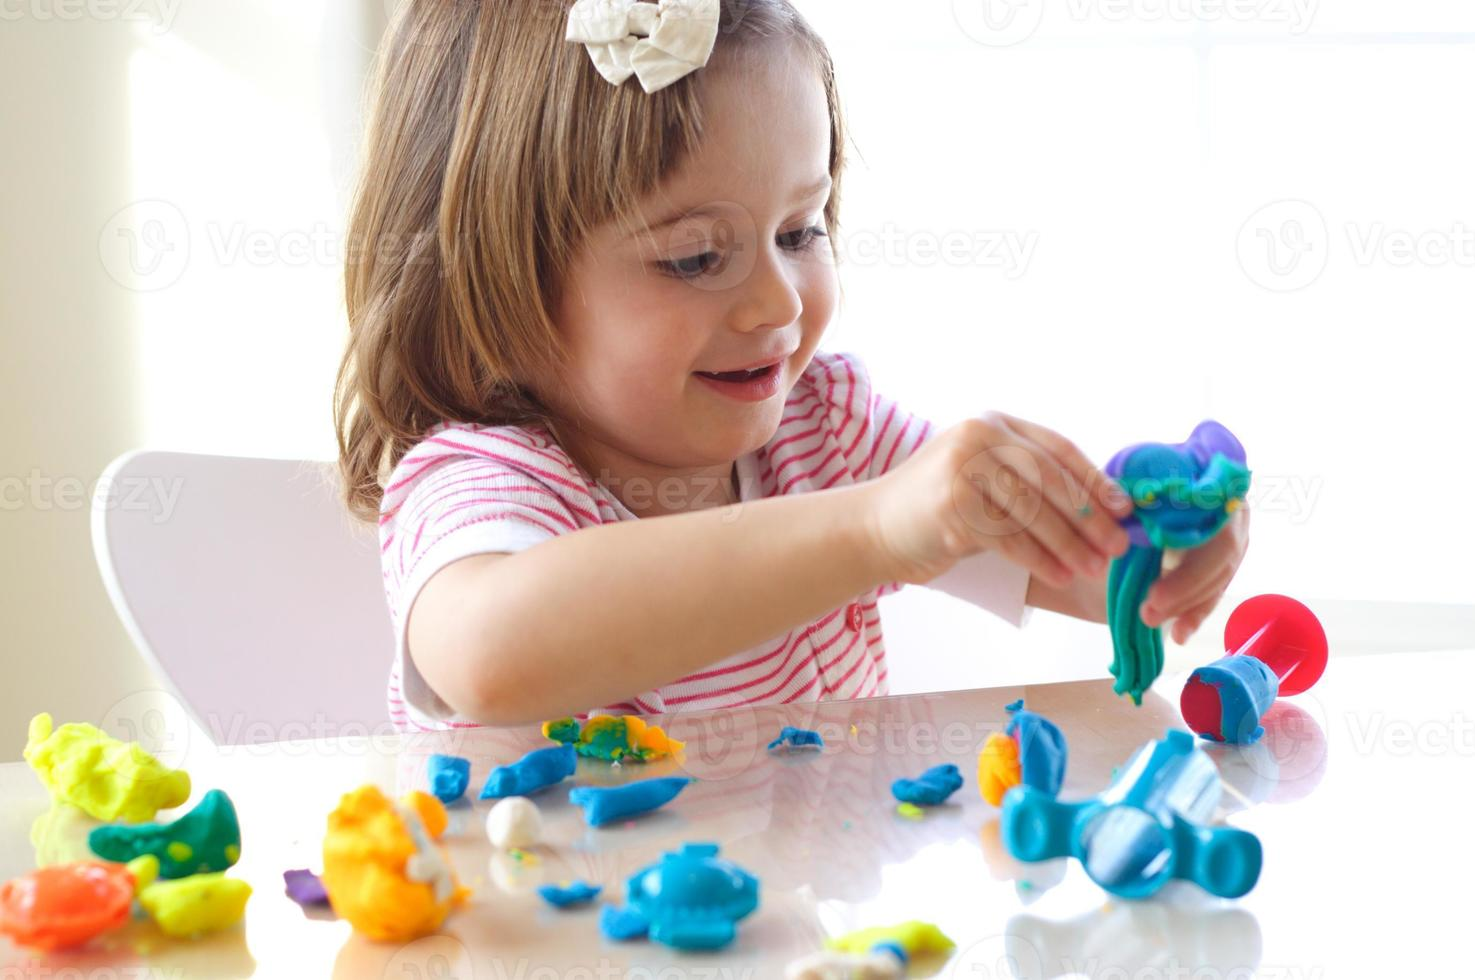 A happy young girl mixing different colors of play dough photo